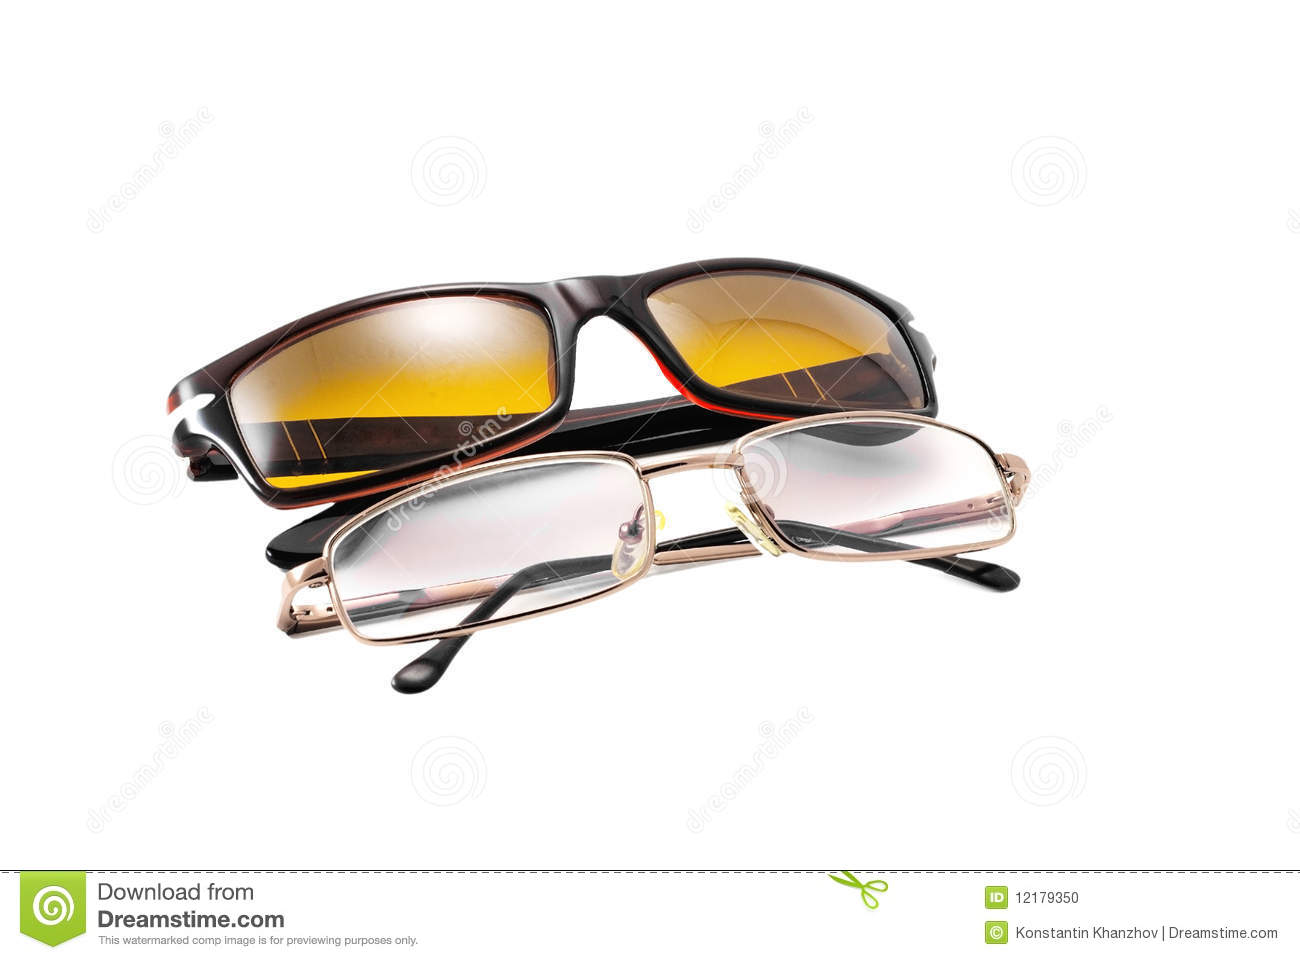 Sunglasses and reading glasses isolated